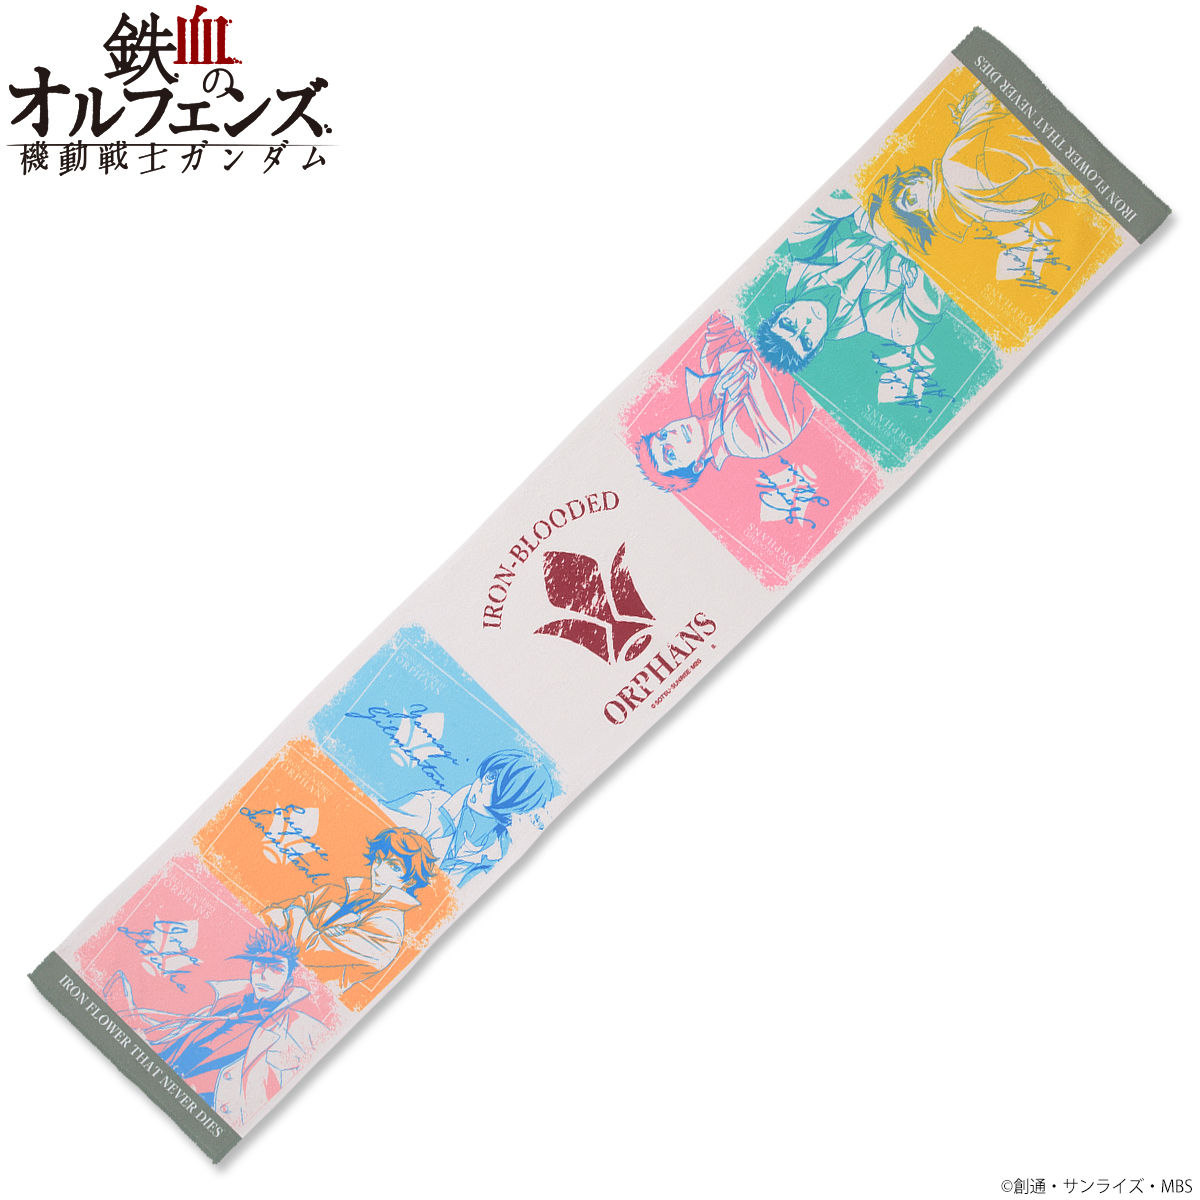 Mobile Suit Gundam: Iron-Blooded Orphans Tricolor-themed Towel